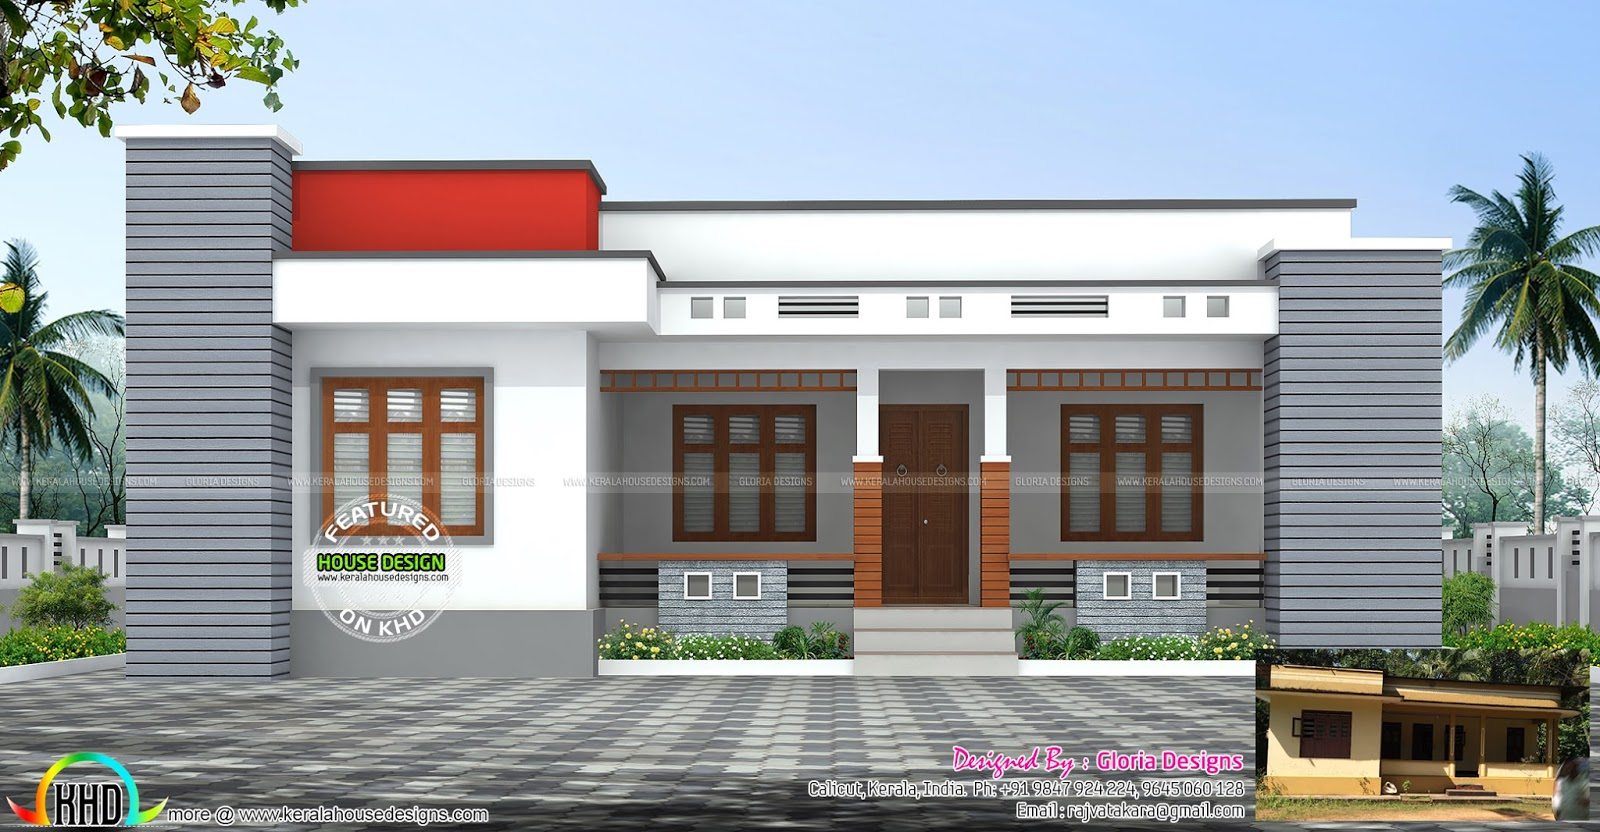 April 2016 kerala home design and floor plans for Single house design